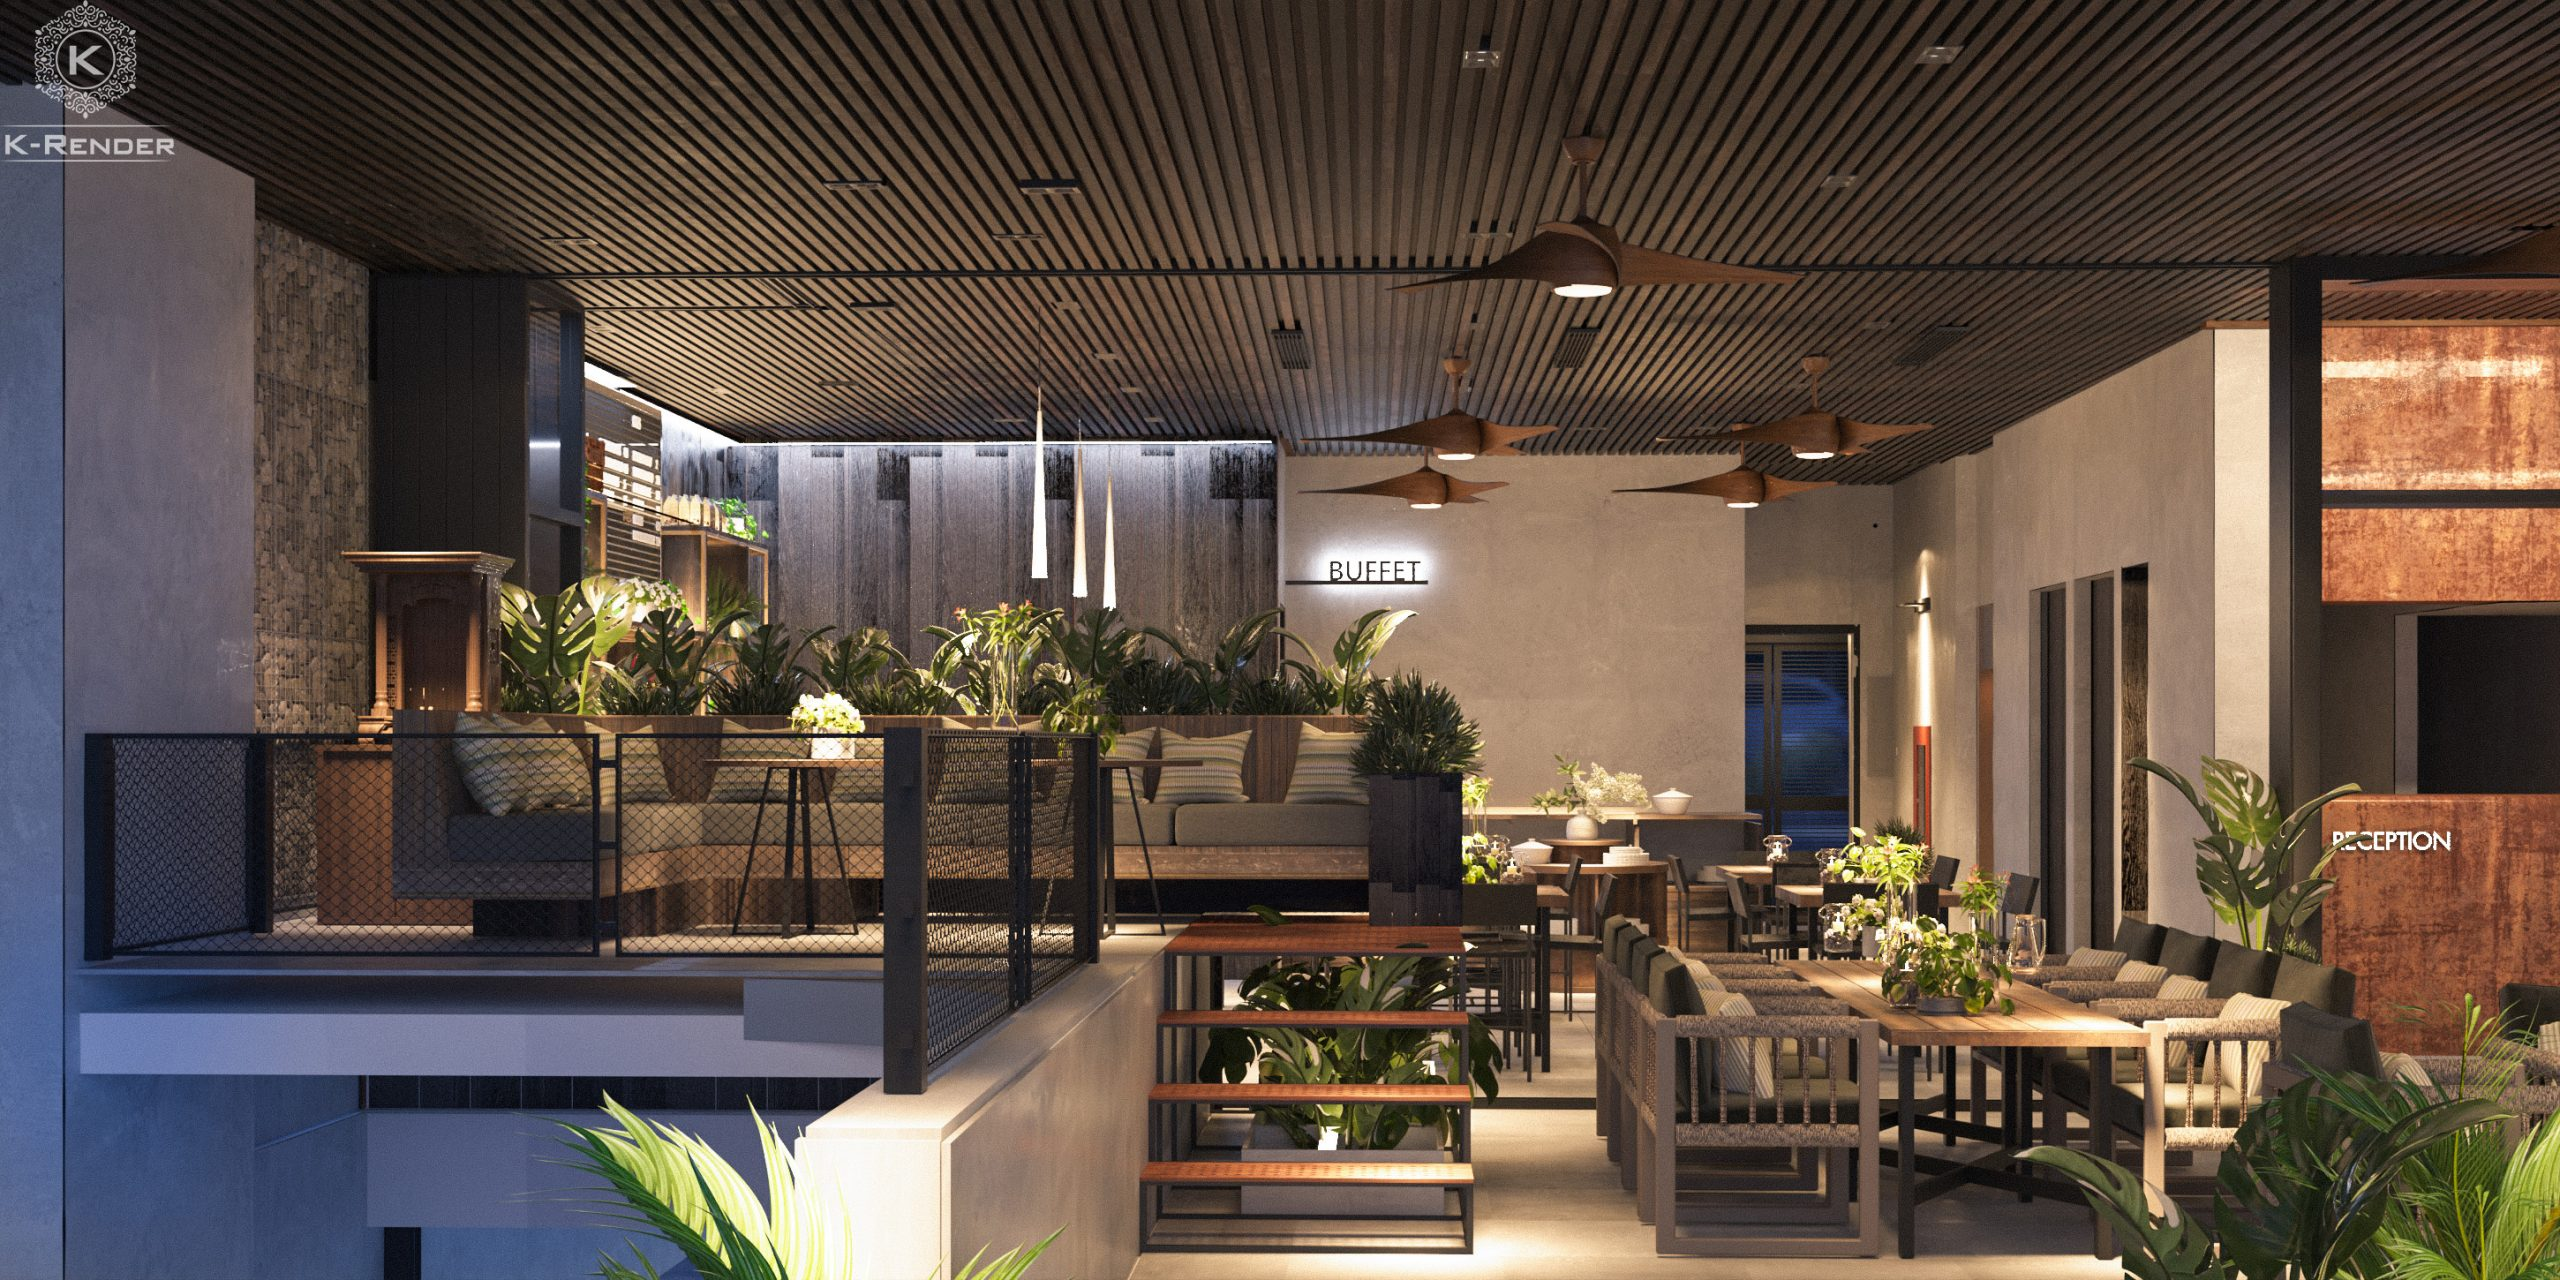 all-things-about-restaurant-interior-rendering-that-you-should-know-3